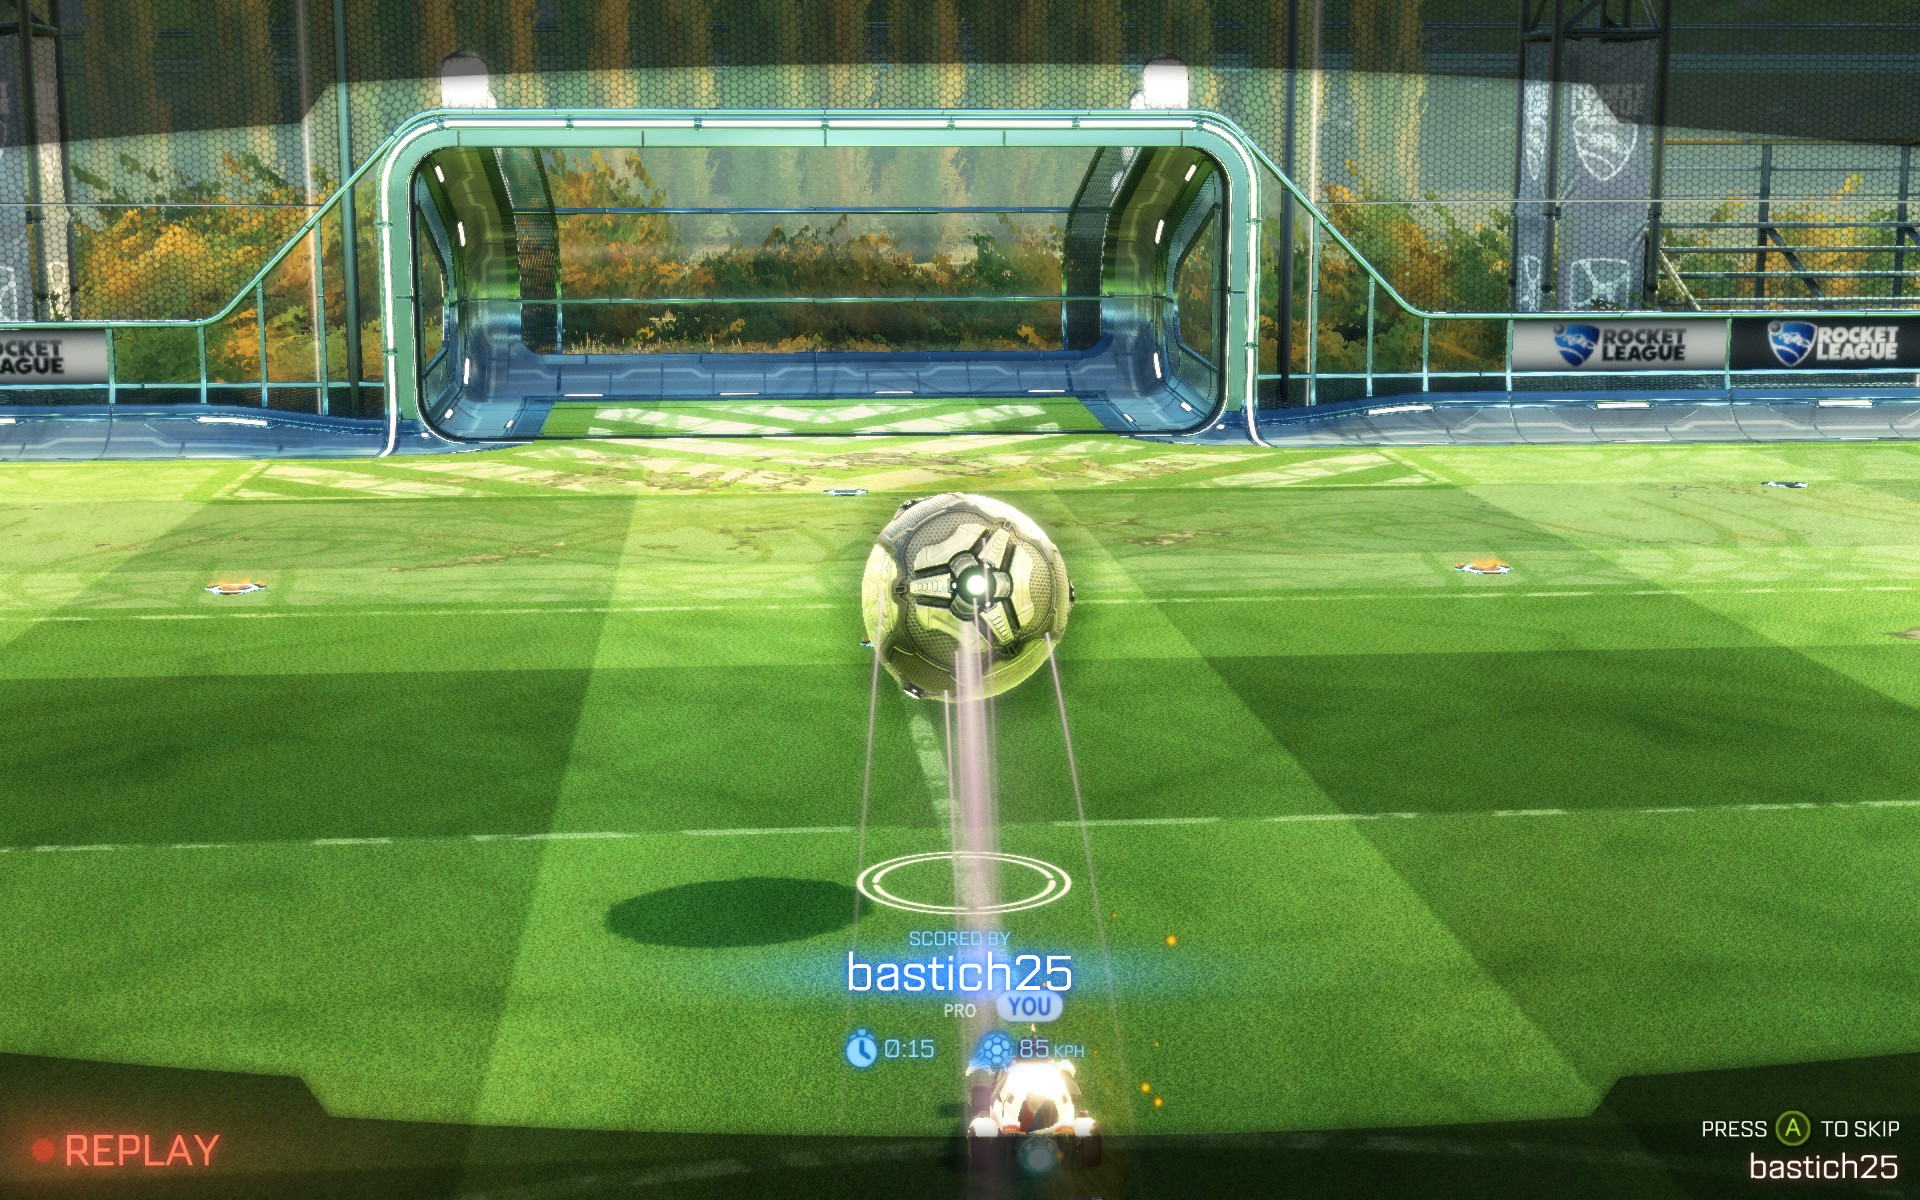 Cars that play soccer is the best sports game. Who knew?